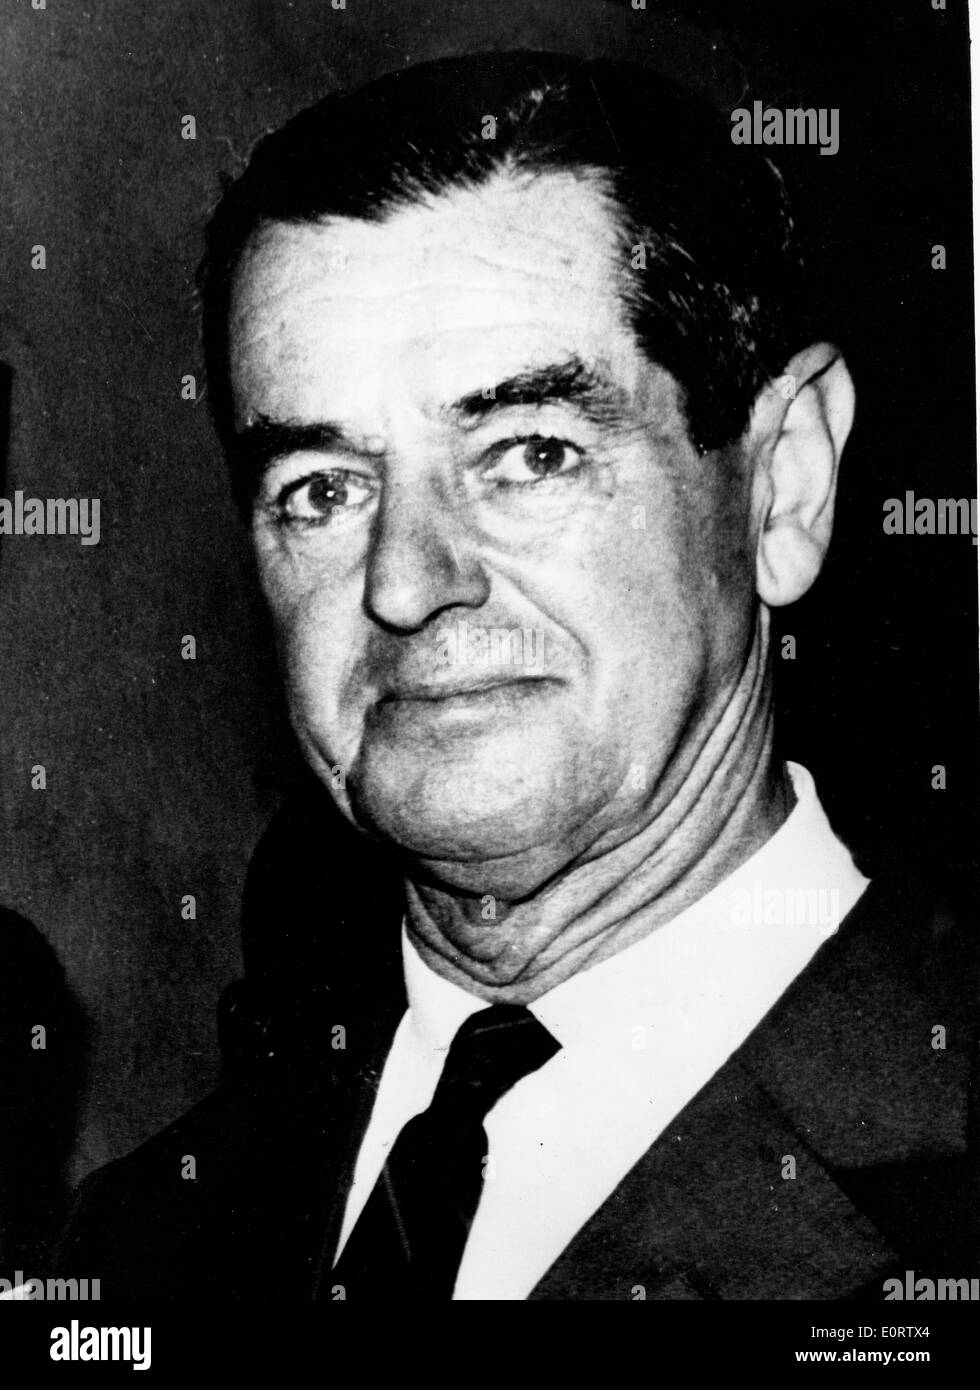 Prime Minister of Southern Rhodesia Winston Field - Stock Image